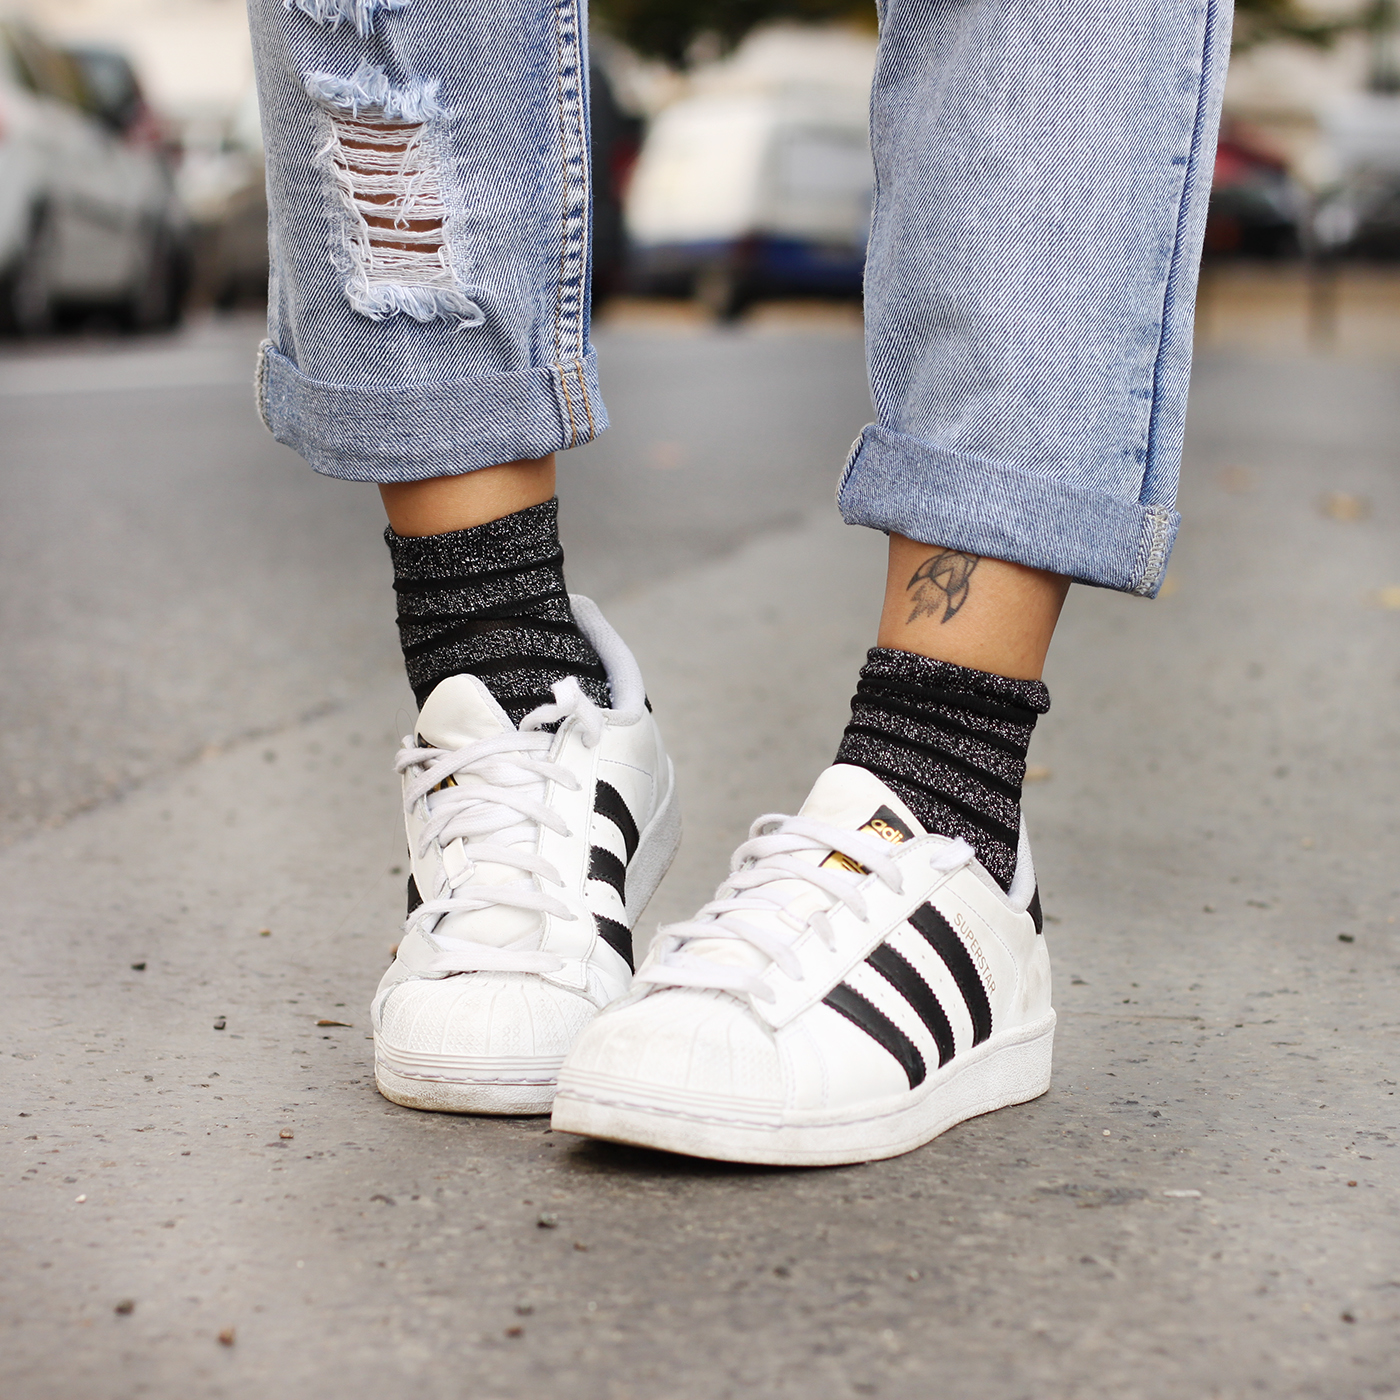 adidas_superstar_meganvlt